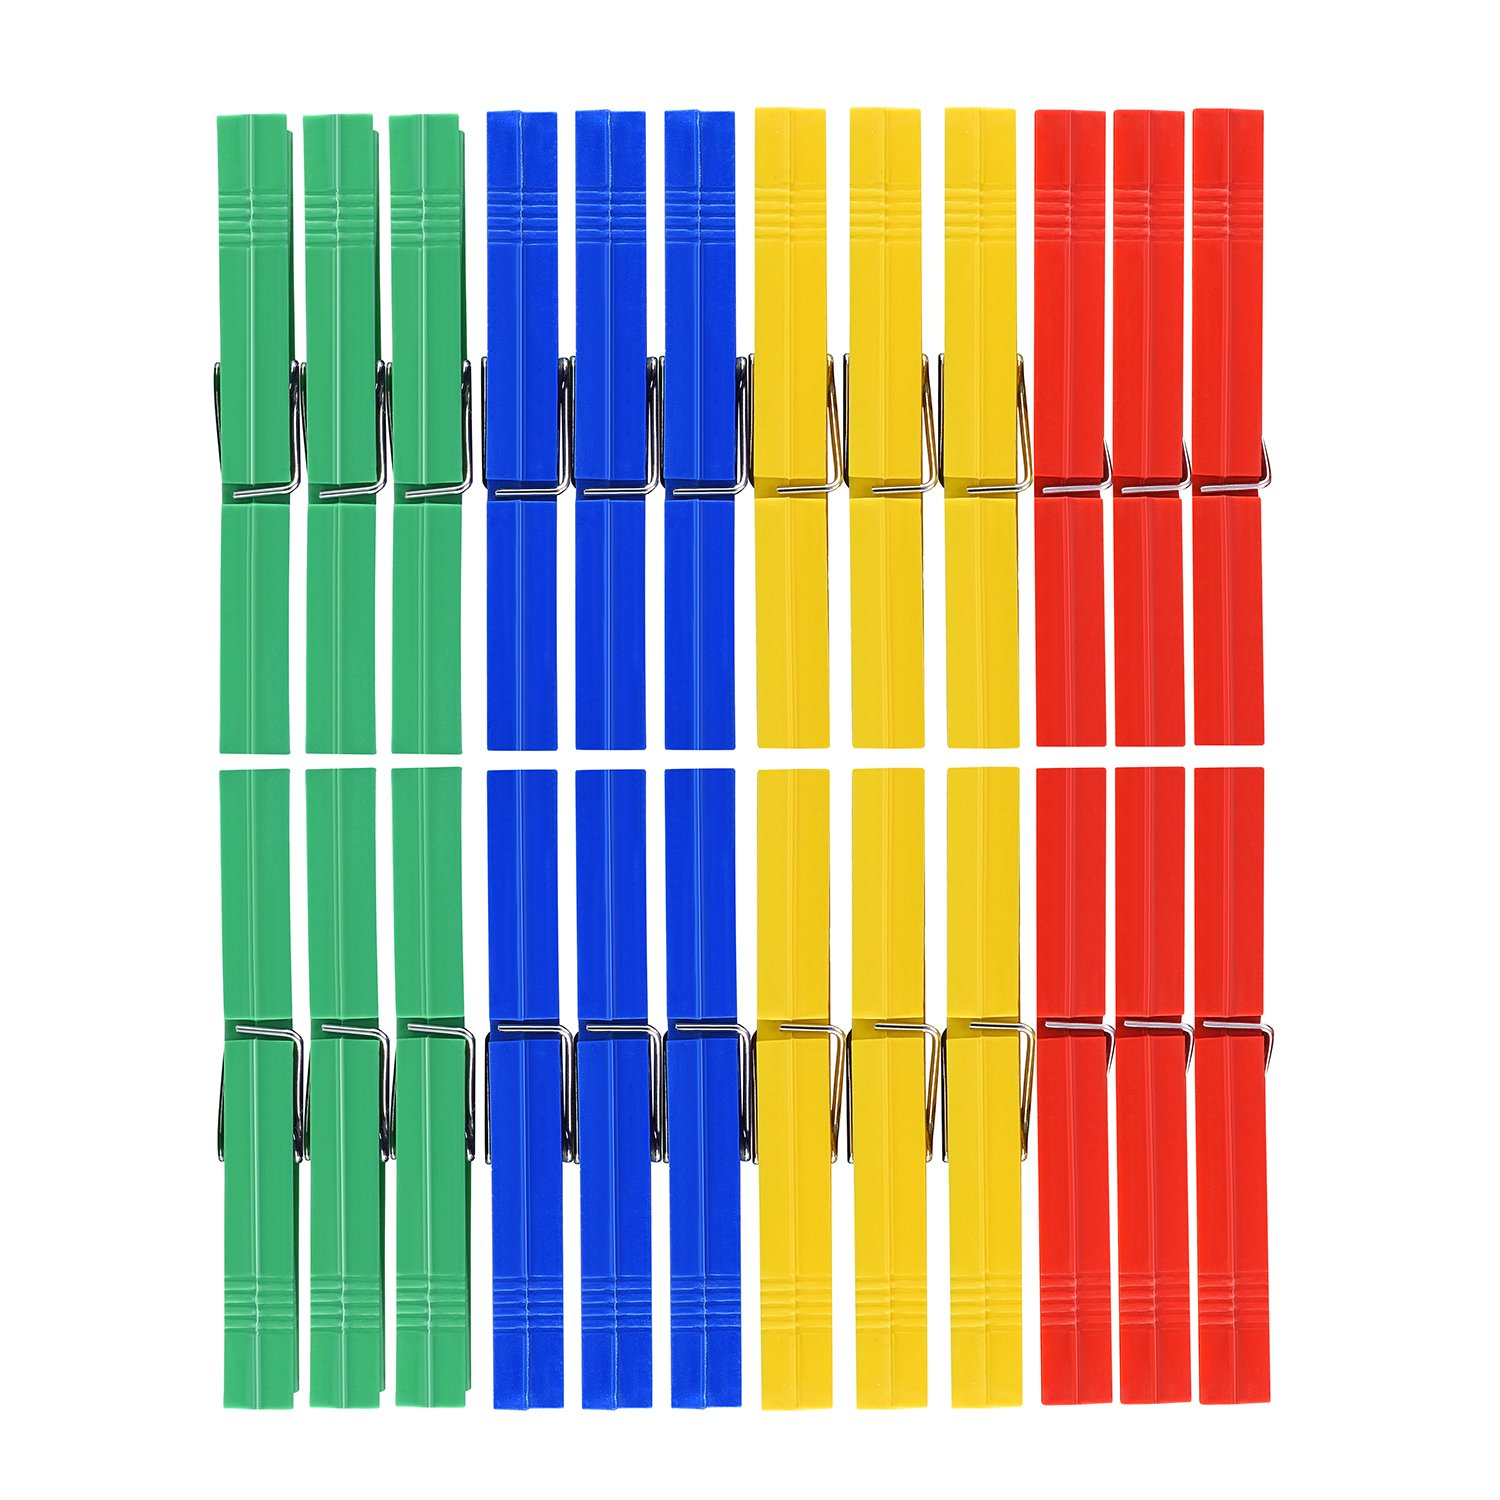 TtoyouU Colored Plastic Clothespins Clothes Pins Clips Pegs 48pcs Assorted Colors(Green/Dark Blue/Yellow/Red)